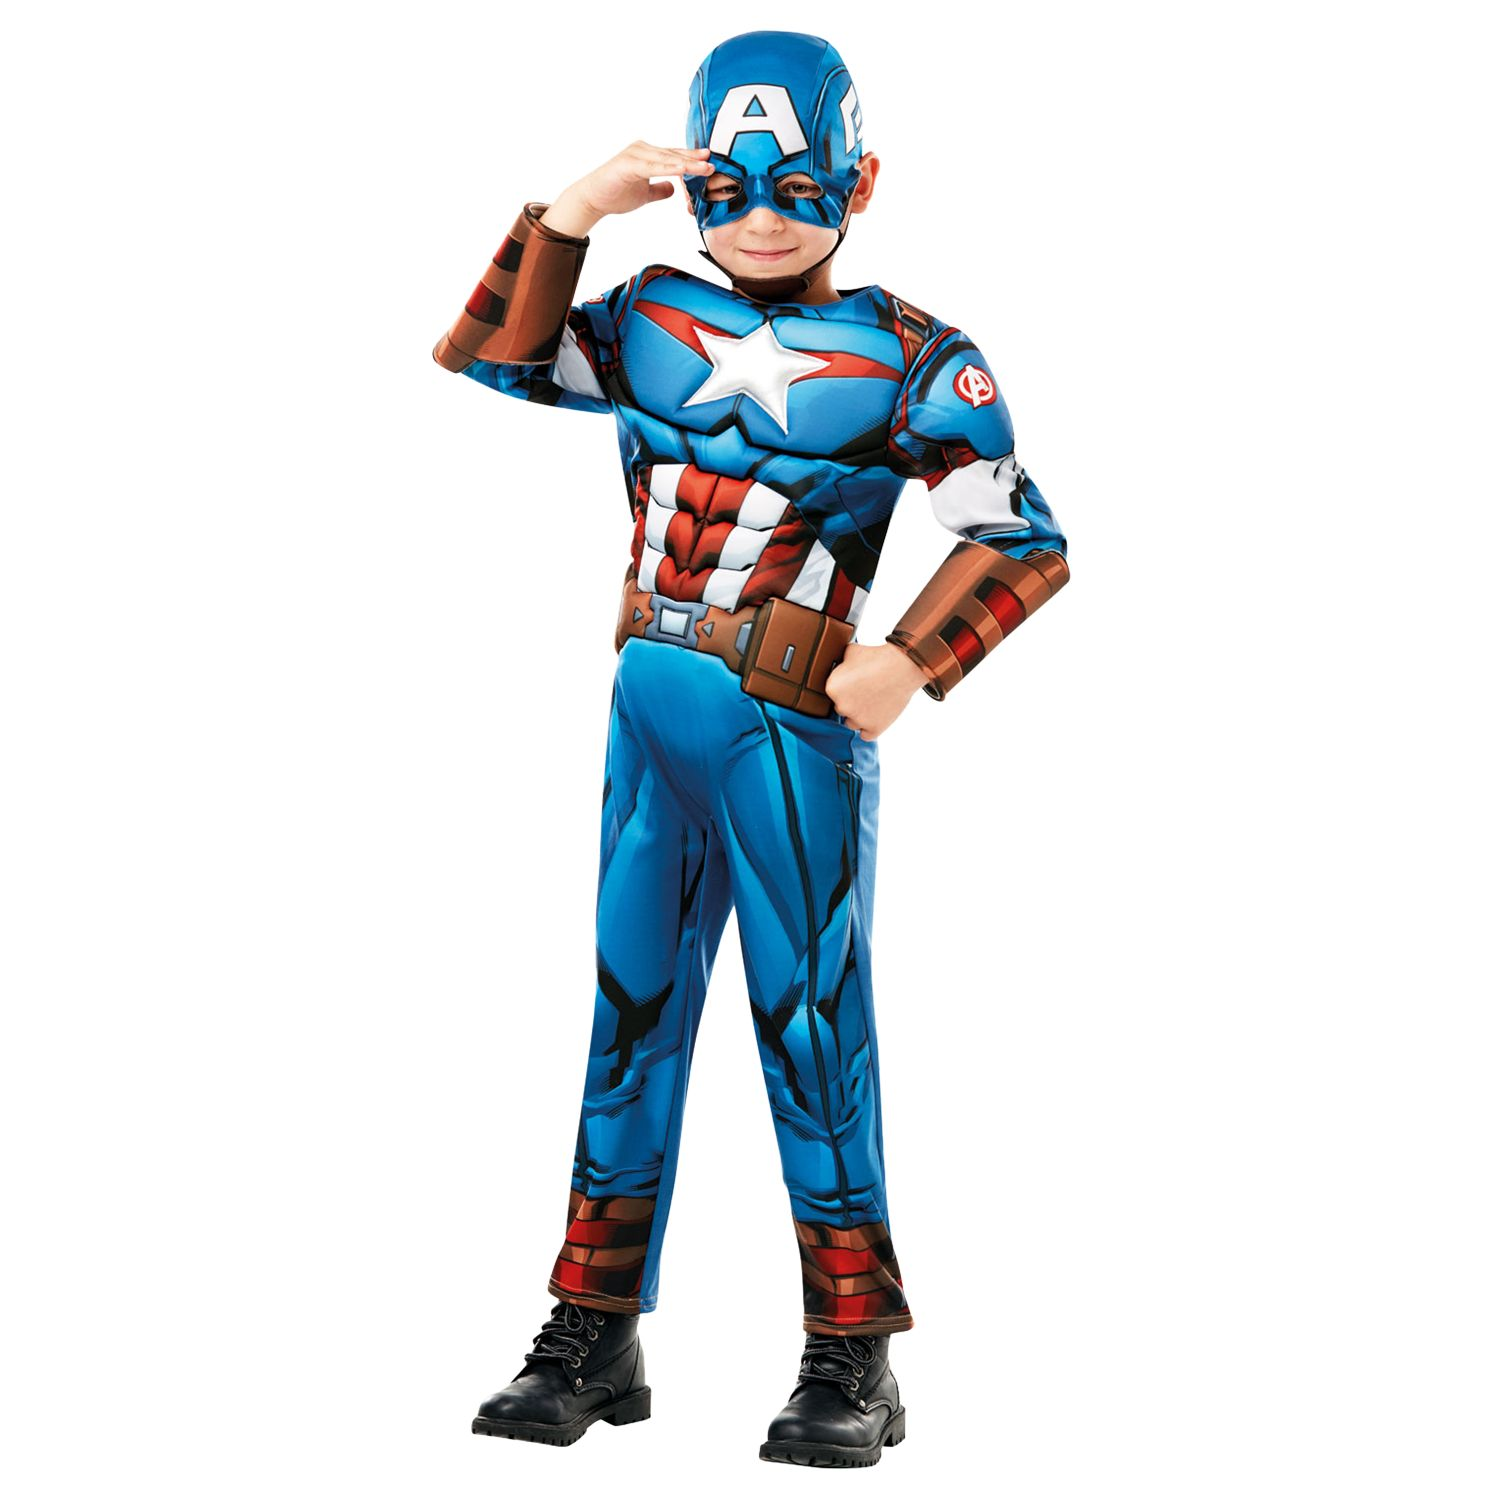 captain america deluxe children's costume at john lewis & partners